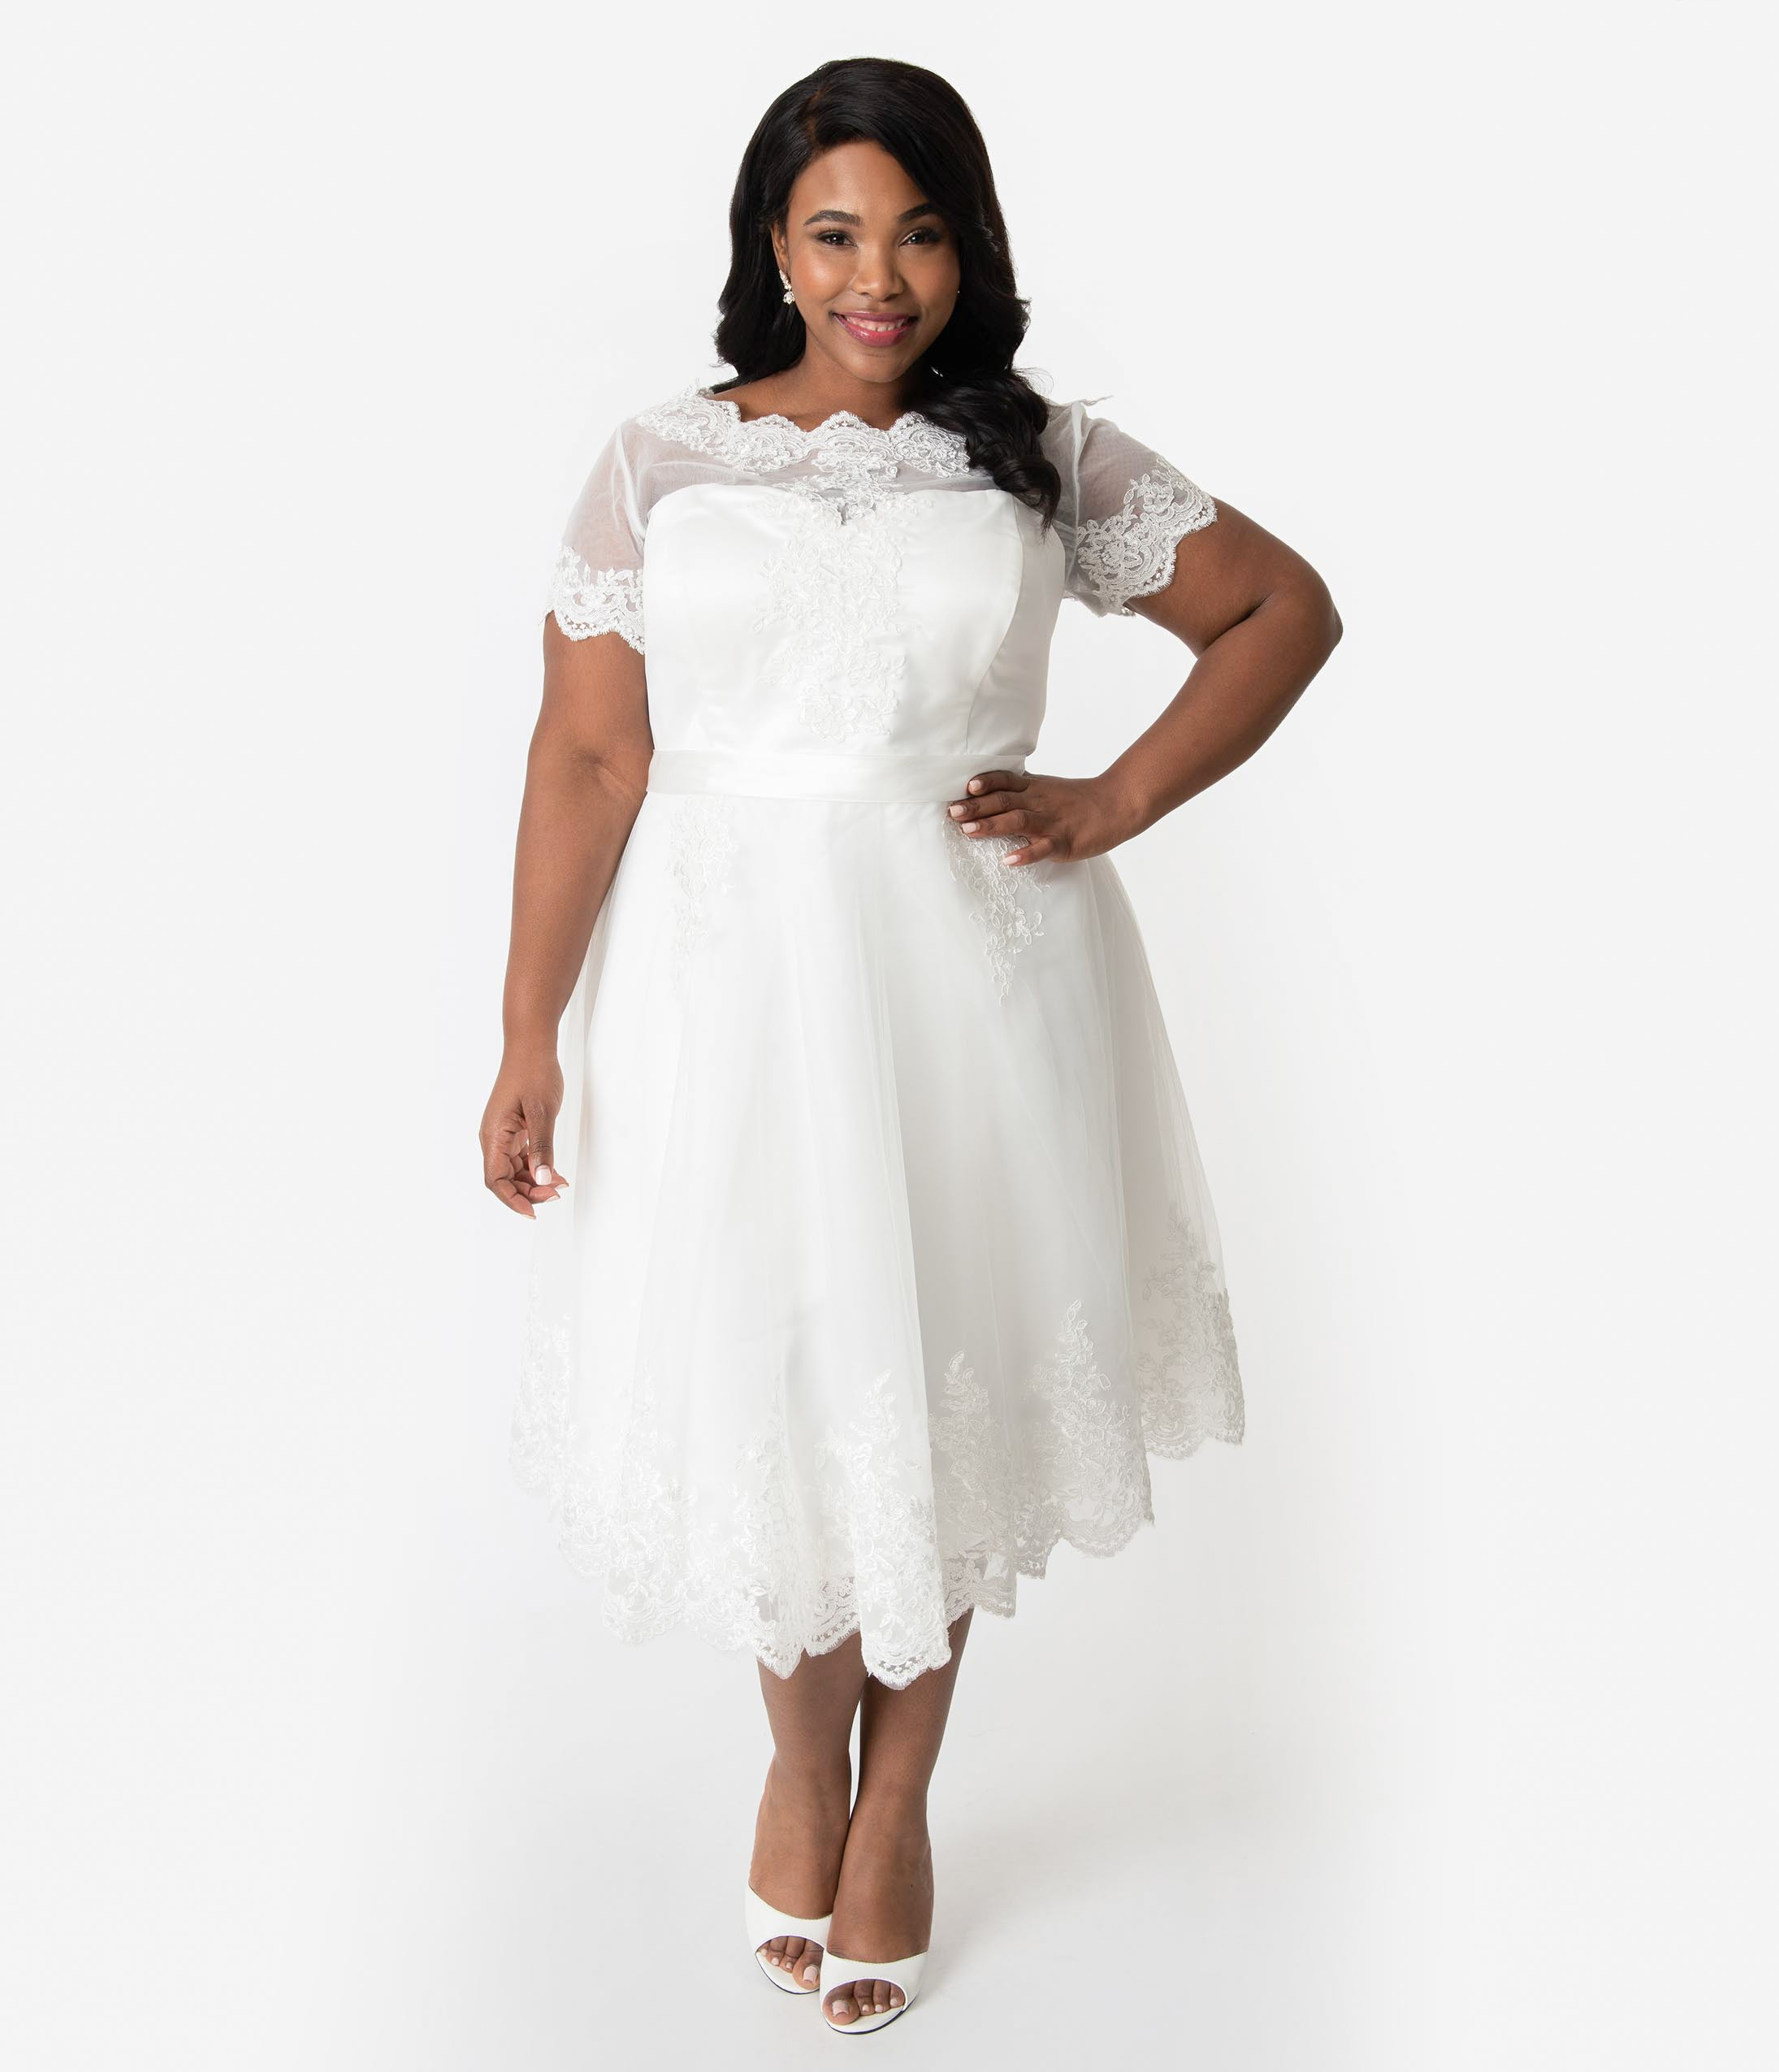 60s Wedding Dresses | 70s Wedding Dresses Unique Vintage Plus Size 1950S White Lace Short Sleeve Cannes Bridal Dress $248.00 AT vintagedancer.com